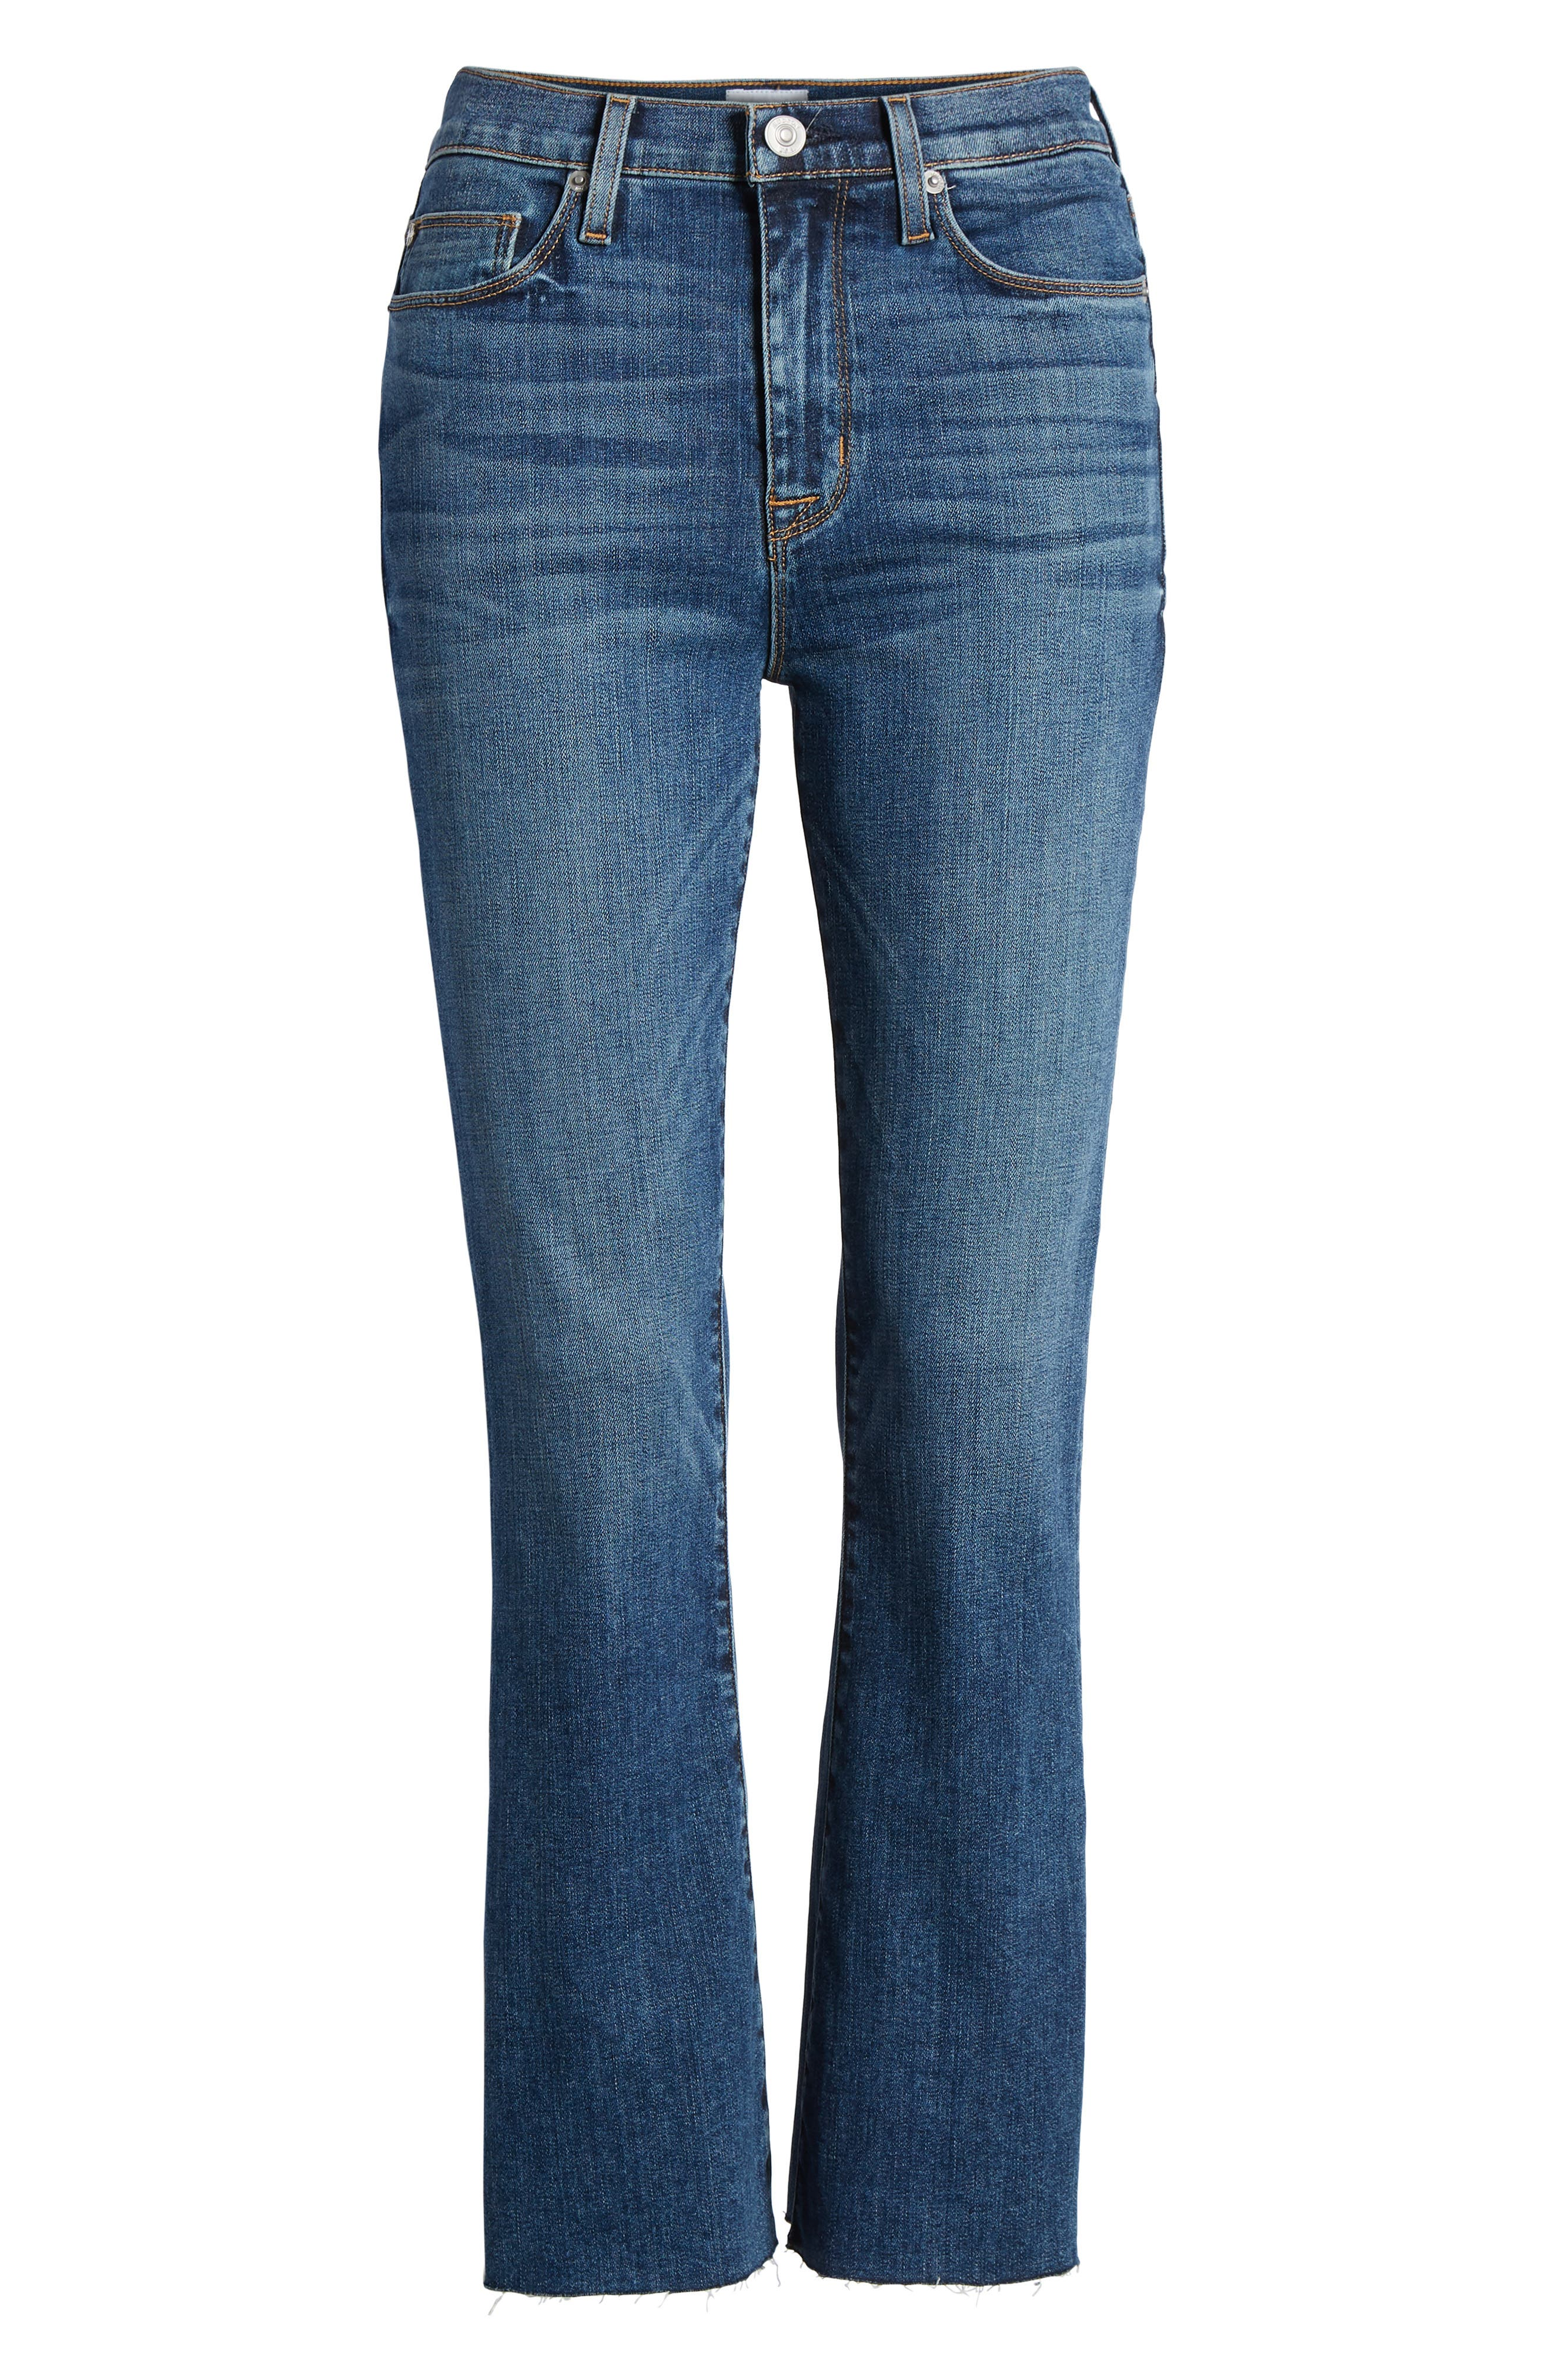 Holly High Waist Crop Flare Jeans,                             Alternate thumbnail 7, color,                             Loss Control